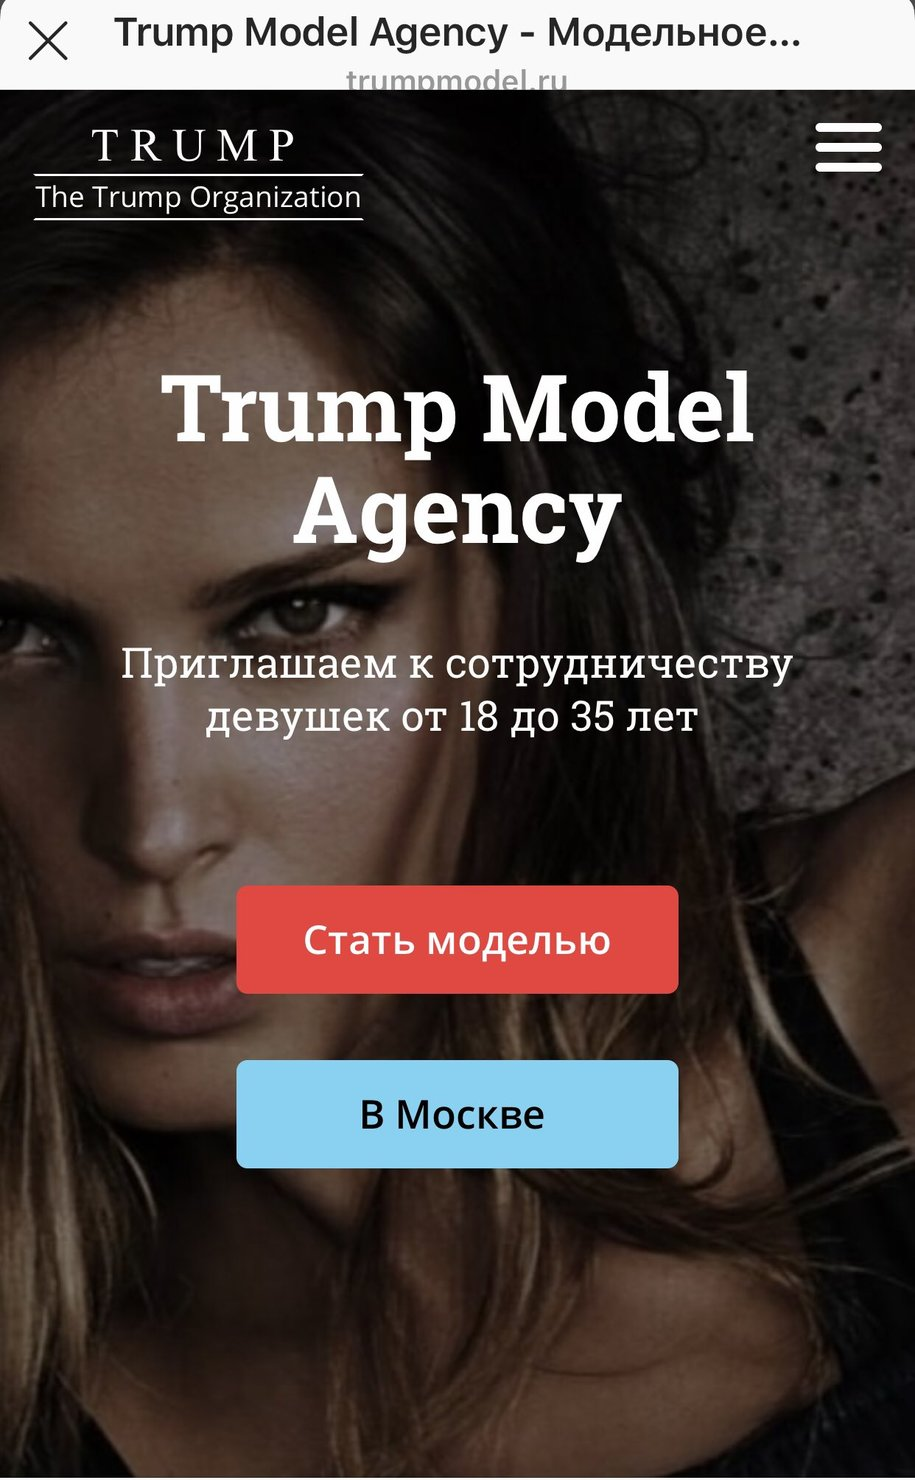 Trump Models pulls out of US to perhaps appear extradition free in Moscow